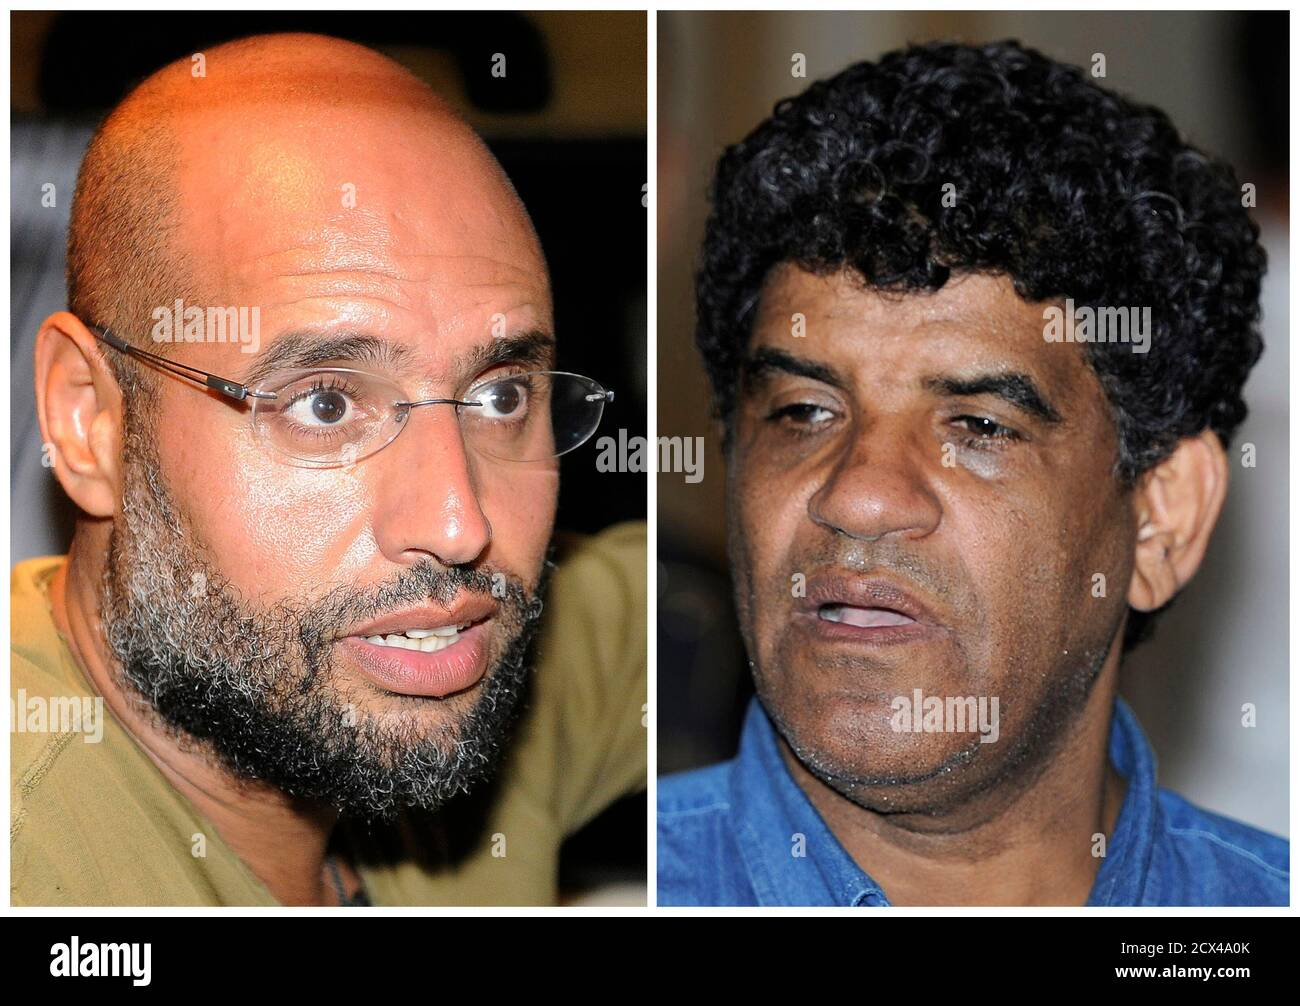 A combination photograph shows Saif Al-Islam (L), son of Libyan leader Muammar Gaddafi, talking to reporters in Tripoli in an August 23, 2011 file photo, and Abdullah Al-Senussi, head of the Libyan Intelligence Service speaking to the media in Tripoli in an August 21, 2011 file photo.  Saif al-Islam and former intelligence chief Abdullah al-Senussi propose to hand themselves in to the International Criminal Court, a senior official with Libya's National Transitional Council said on October 26, 2011. Saif al-Islam has been on the run since Libyan forces overran his father's home town Sirte at t Stock Photo